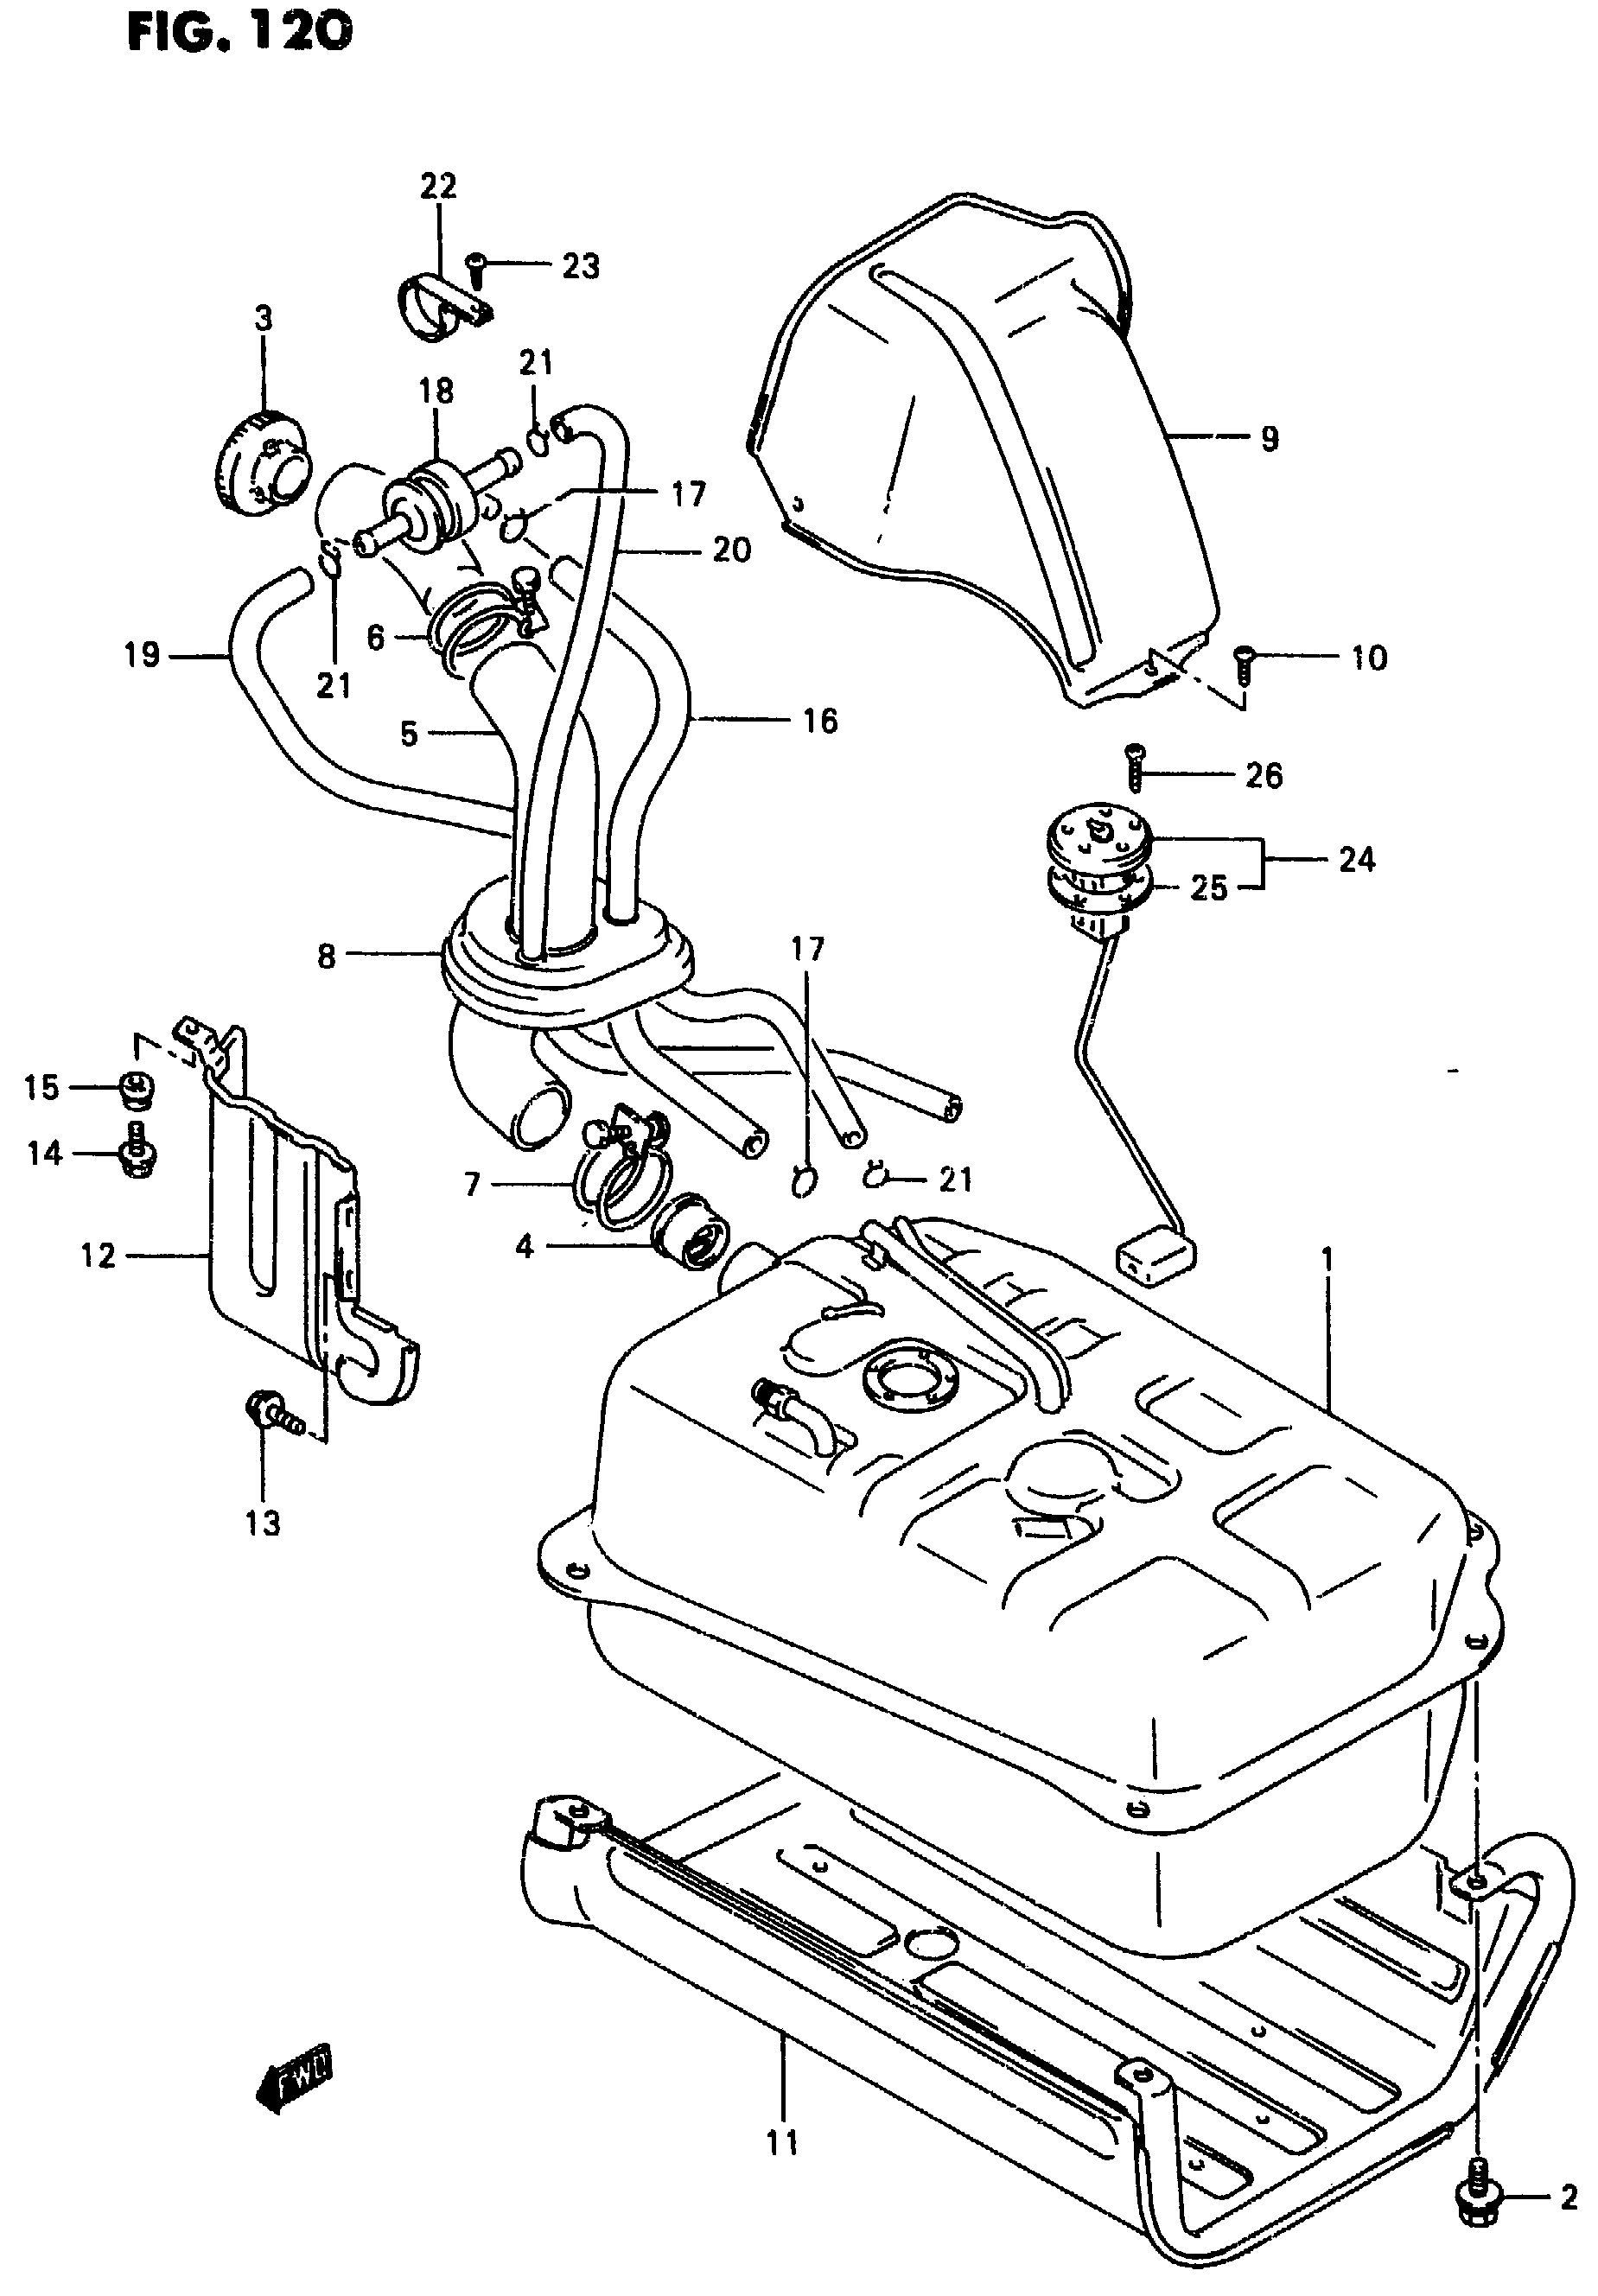 Samurai Fuel Tank Diagram Trusted Wiring Diagrams \u2022 Chevy Air Bags  Chevy Gas Tank Diagram